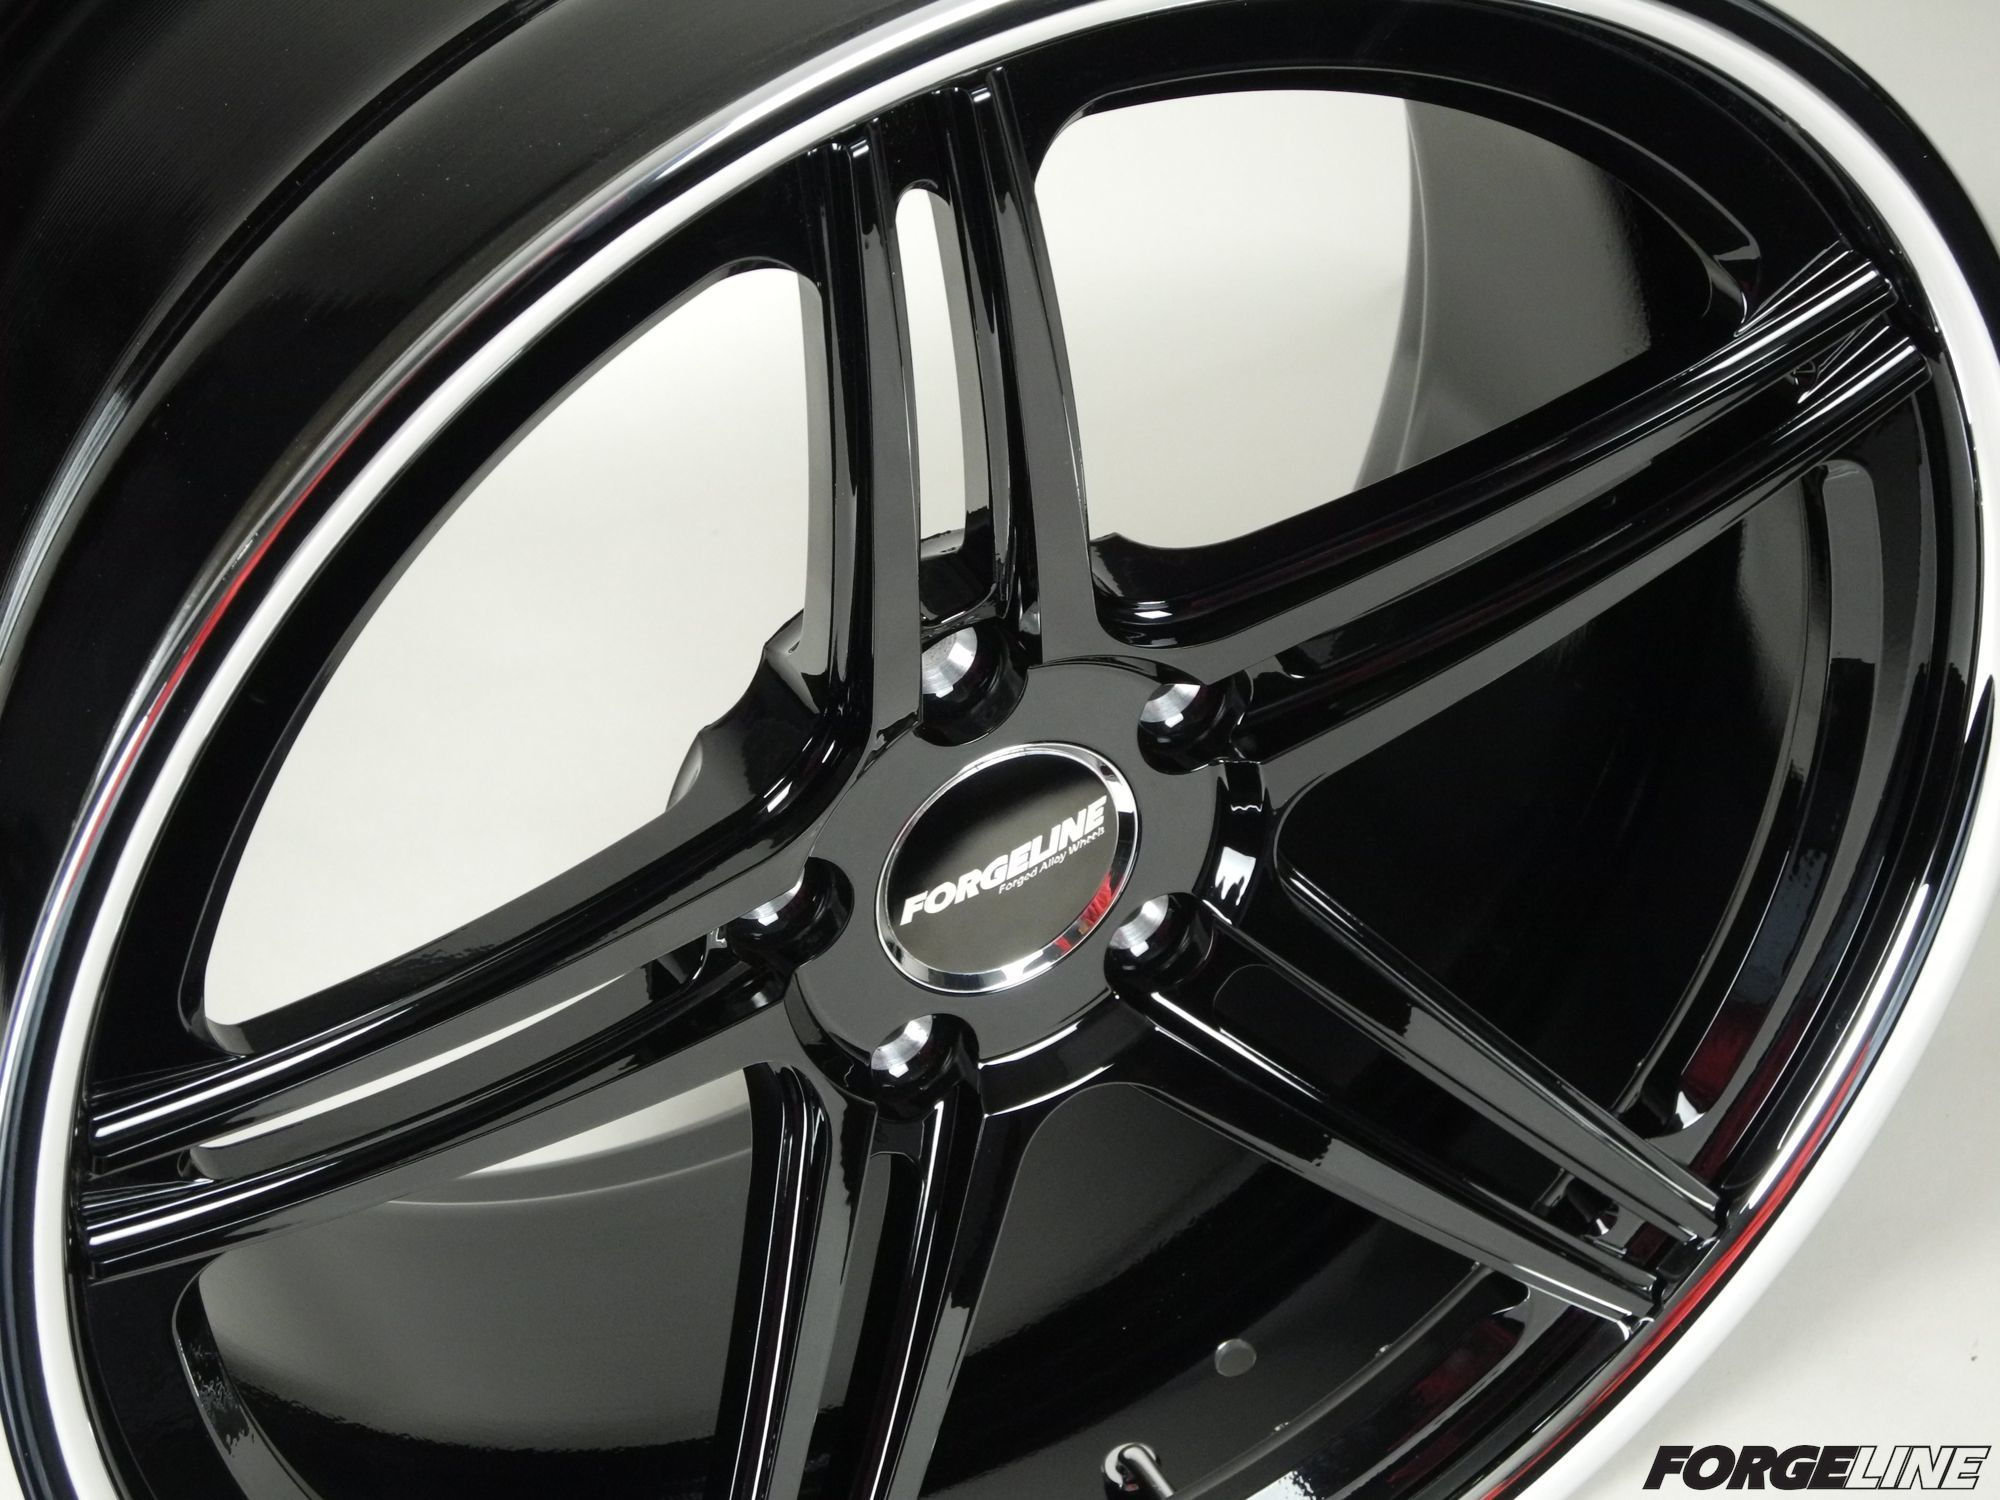 Every order gets its own custom finish. This SC3C for Wheel Enhancement is finished with a Gloss Black center, Gloss Black inner, and Polished outer. Learn more about the SC3C at: http://www.forgeline.com/products/concave-series/sc3c-concave.html